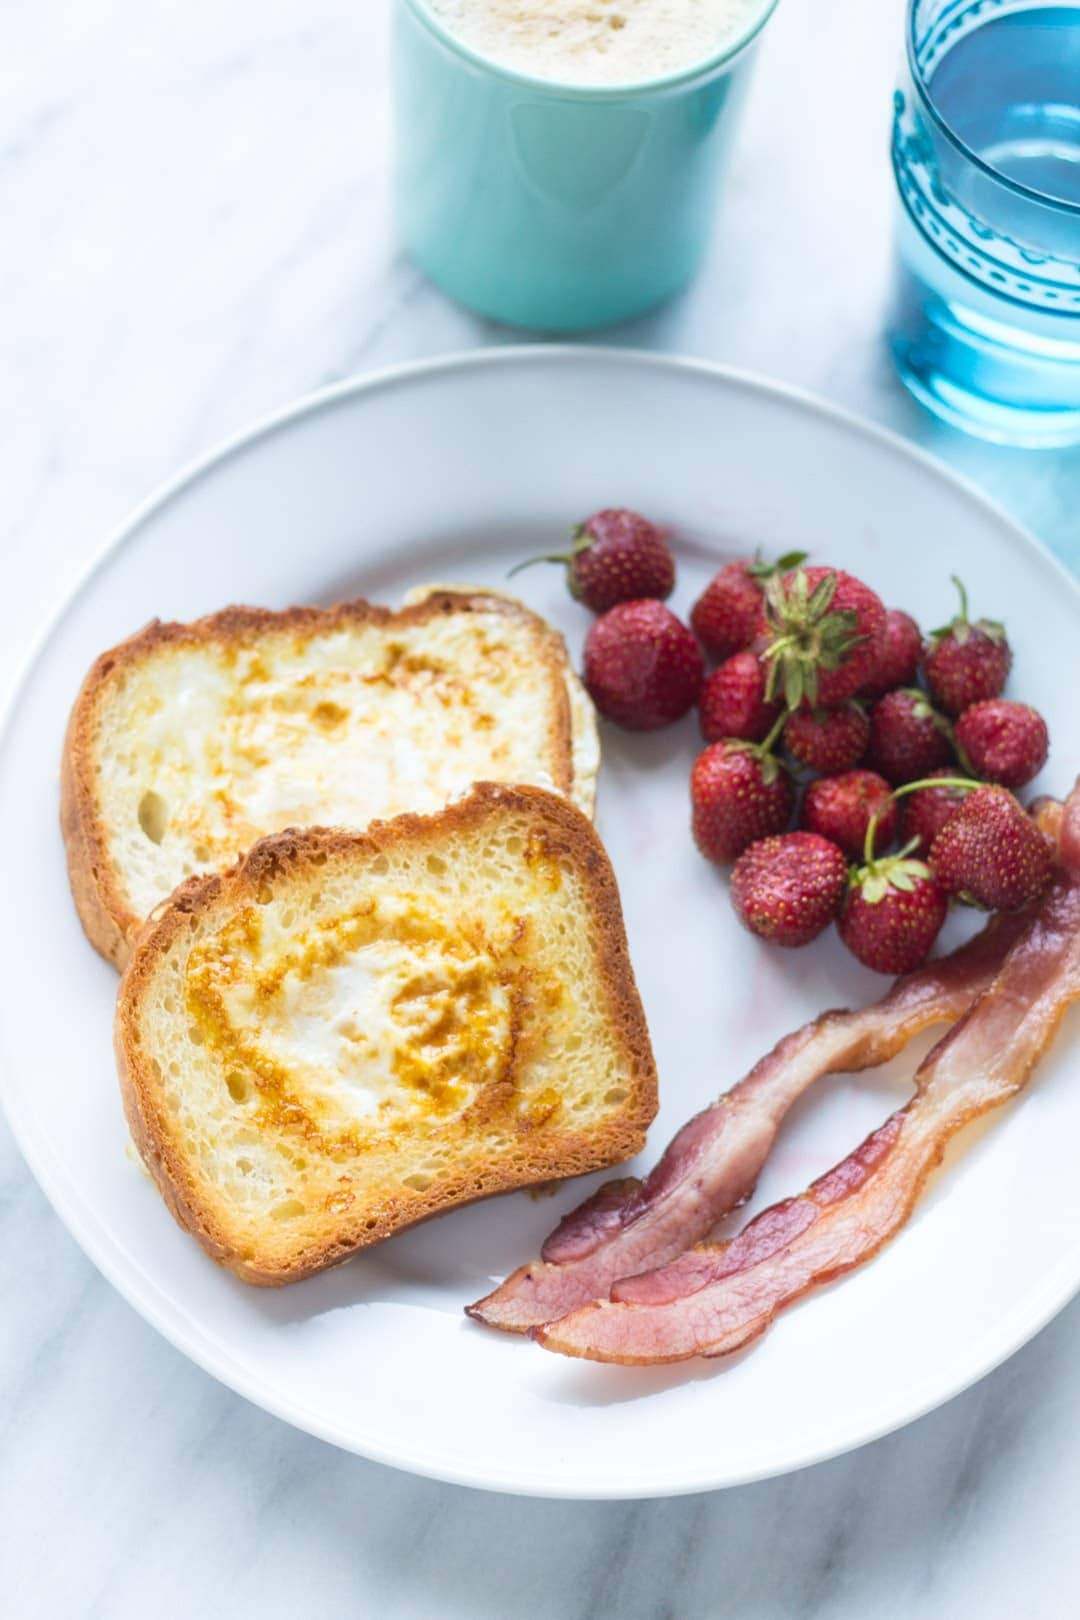 Plate of low FODMAP toad in a hole (toast with a cooked egg in the center), slices of bacon and strawberries